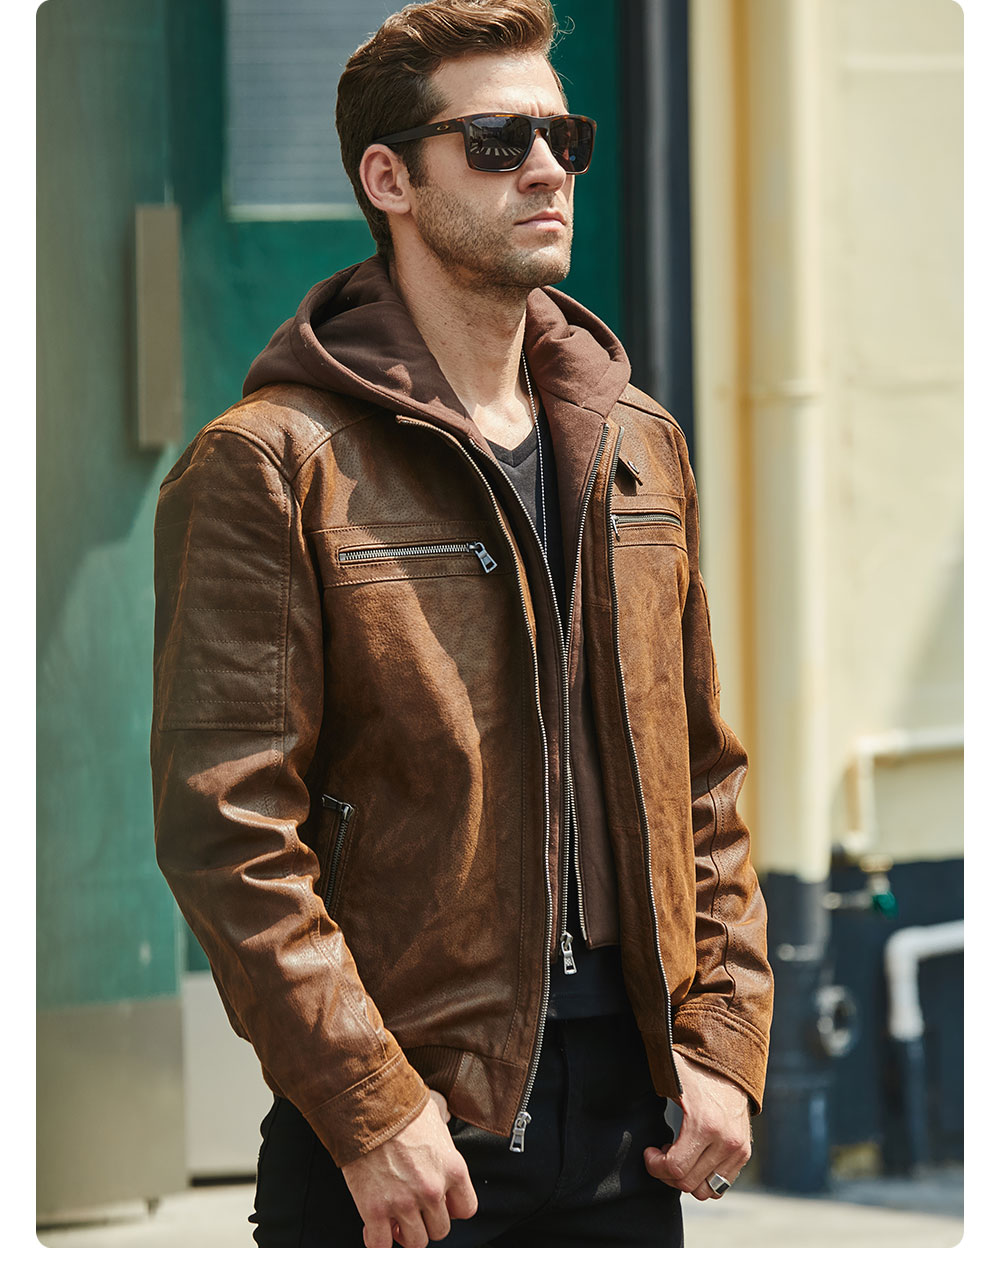 He28ee22bce1a48bbb781dd240135159fN New Men's Leather Jacket, Brown Jacket Made Of Genuine Leather With A Removable Hood, Warm Leather Jacket For Men For The Winter